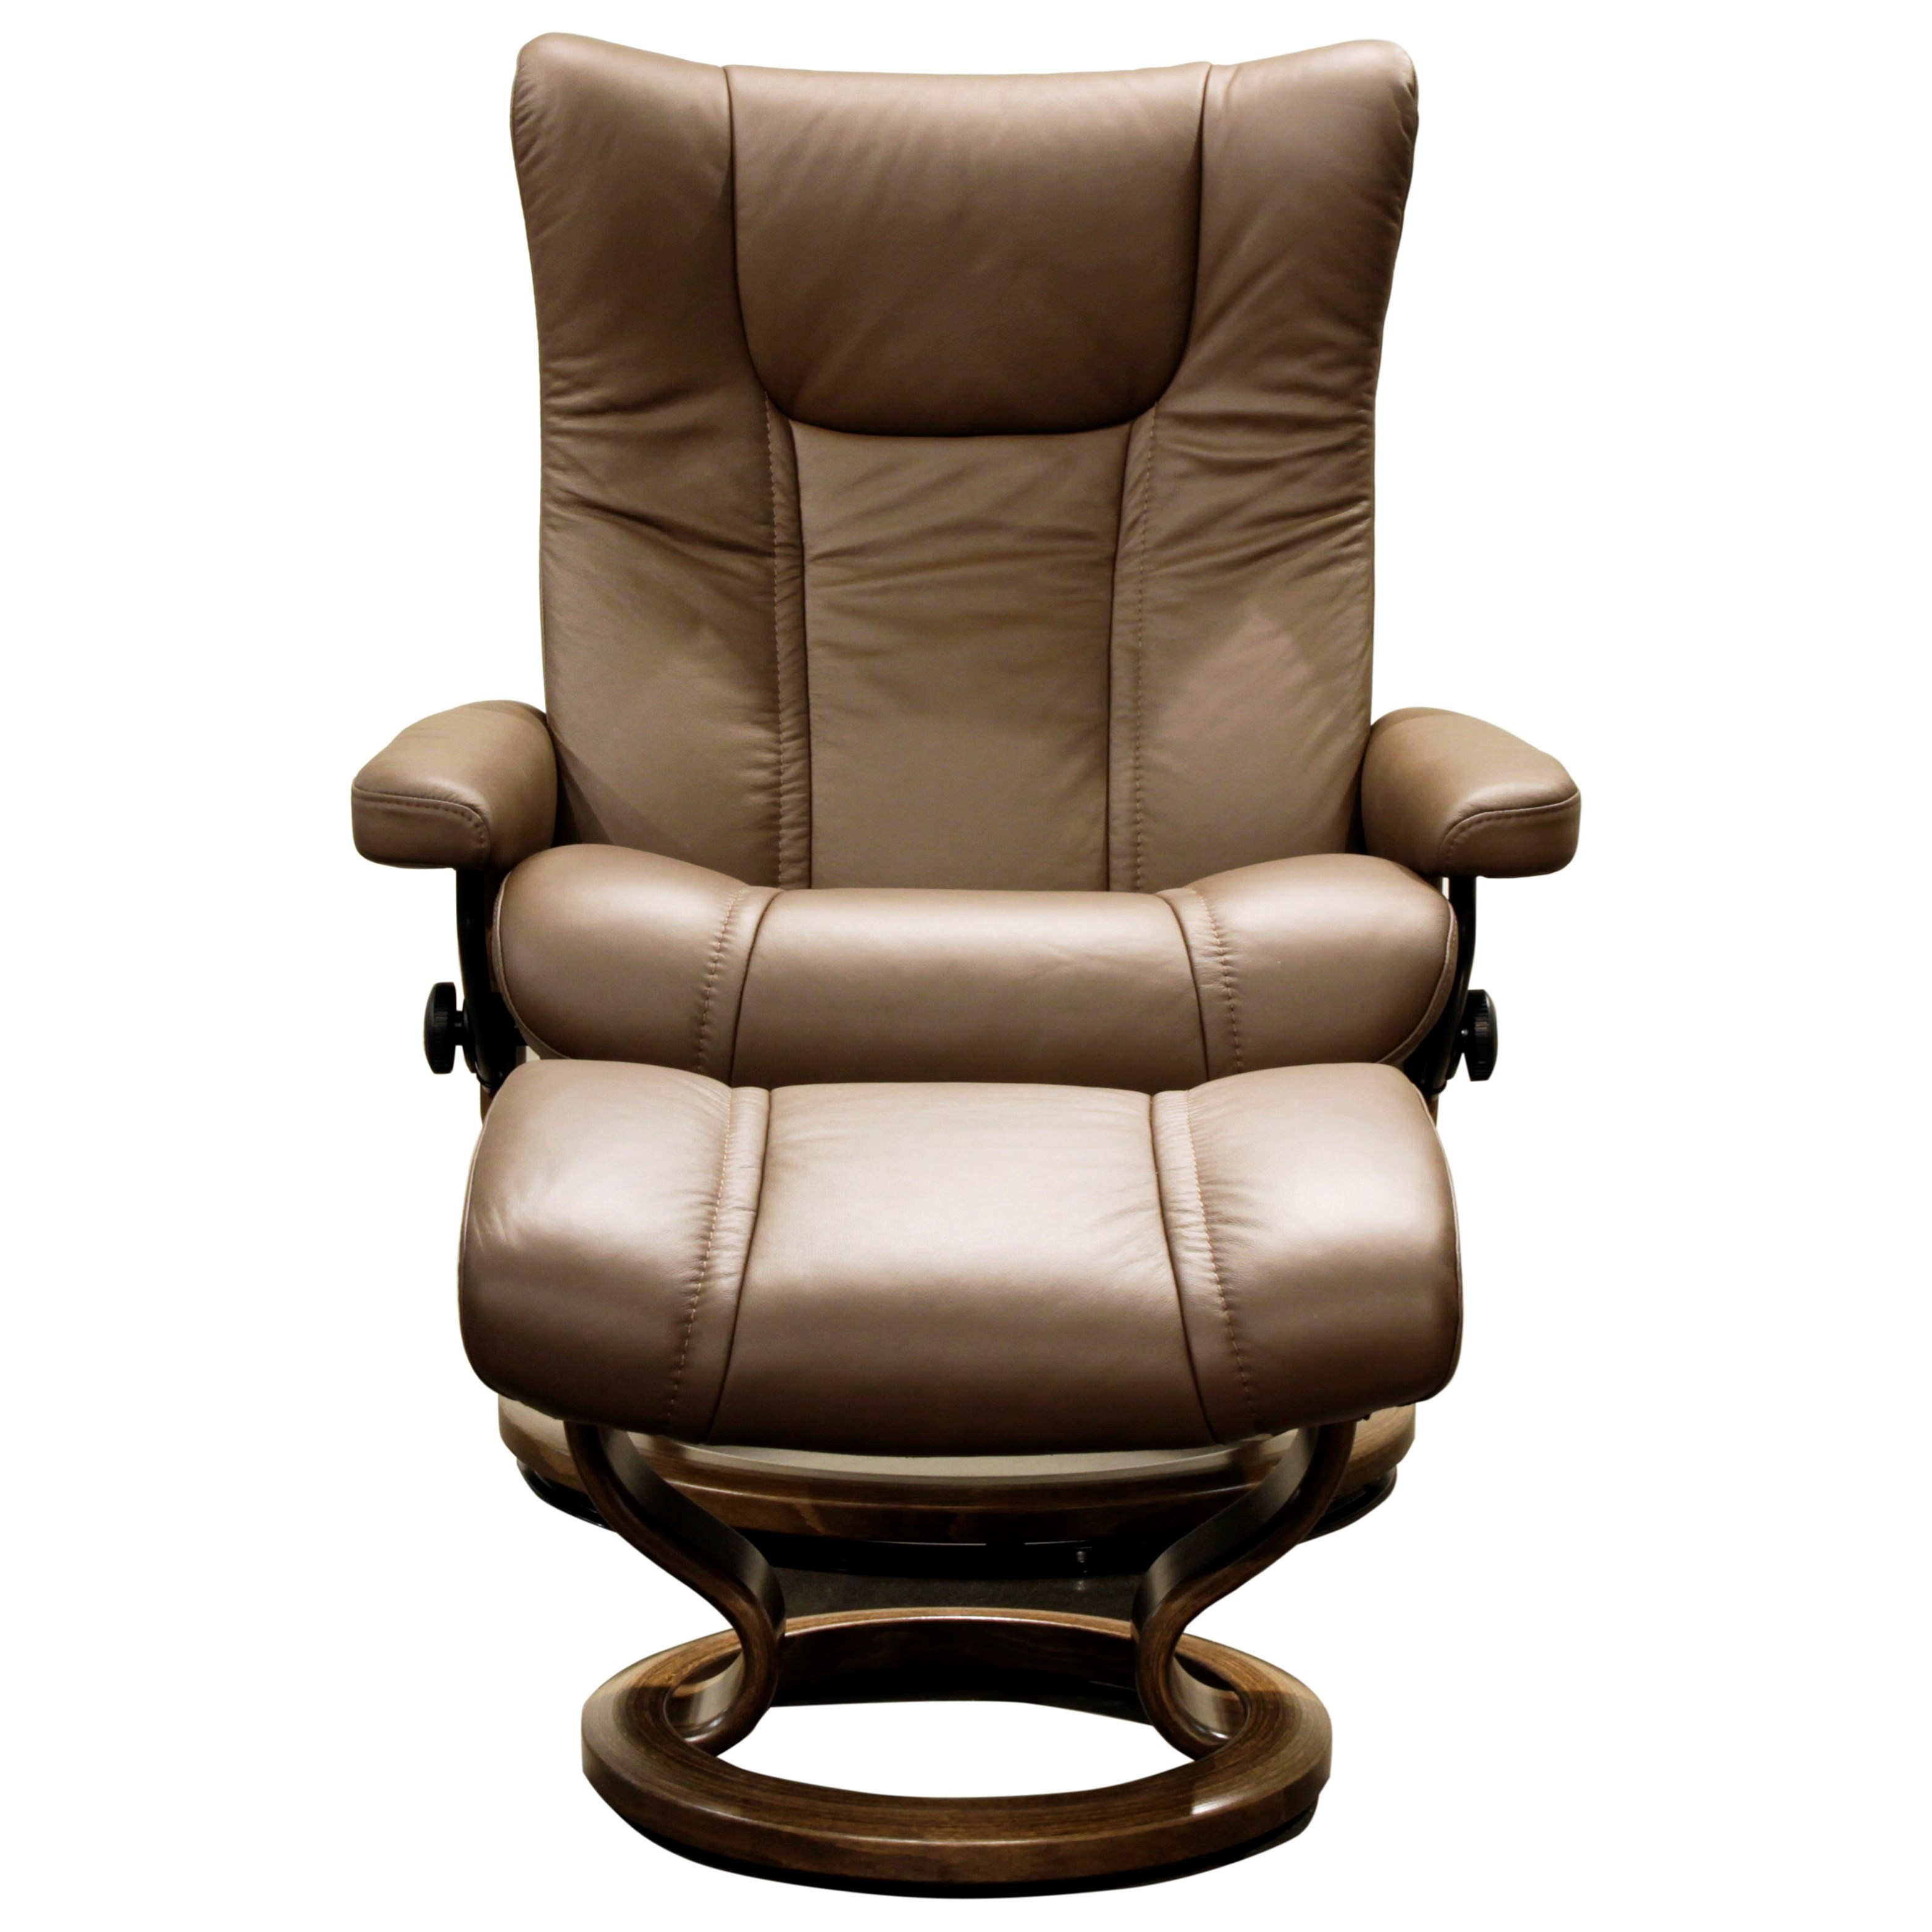 Stressless Wing Classic Legcomfort Stressless Wing Large Reclining Chair And Ottoman With